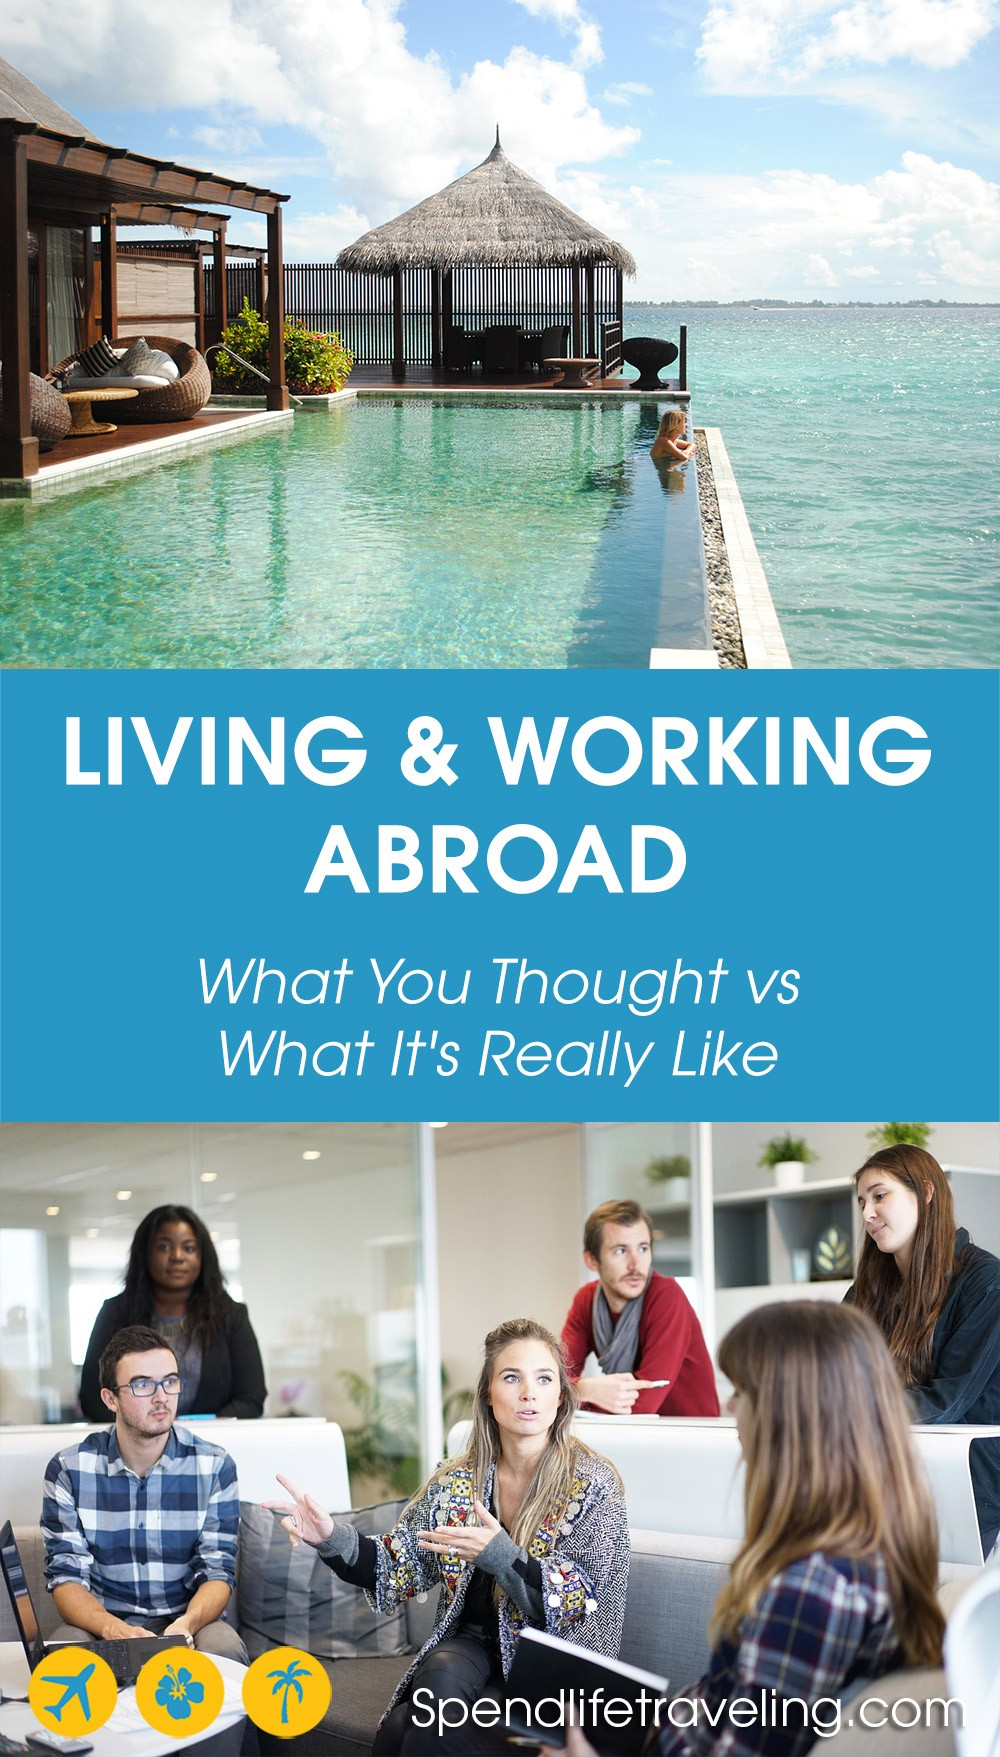 Are you thinking about moving abroad? Check out these 4 common misconceptions about living and working abroad. #moveabroad #liveabroad #workabroad